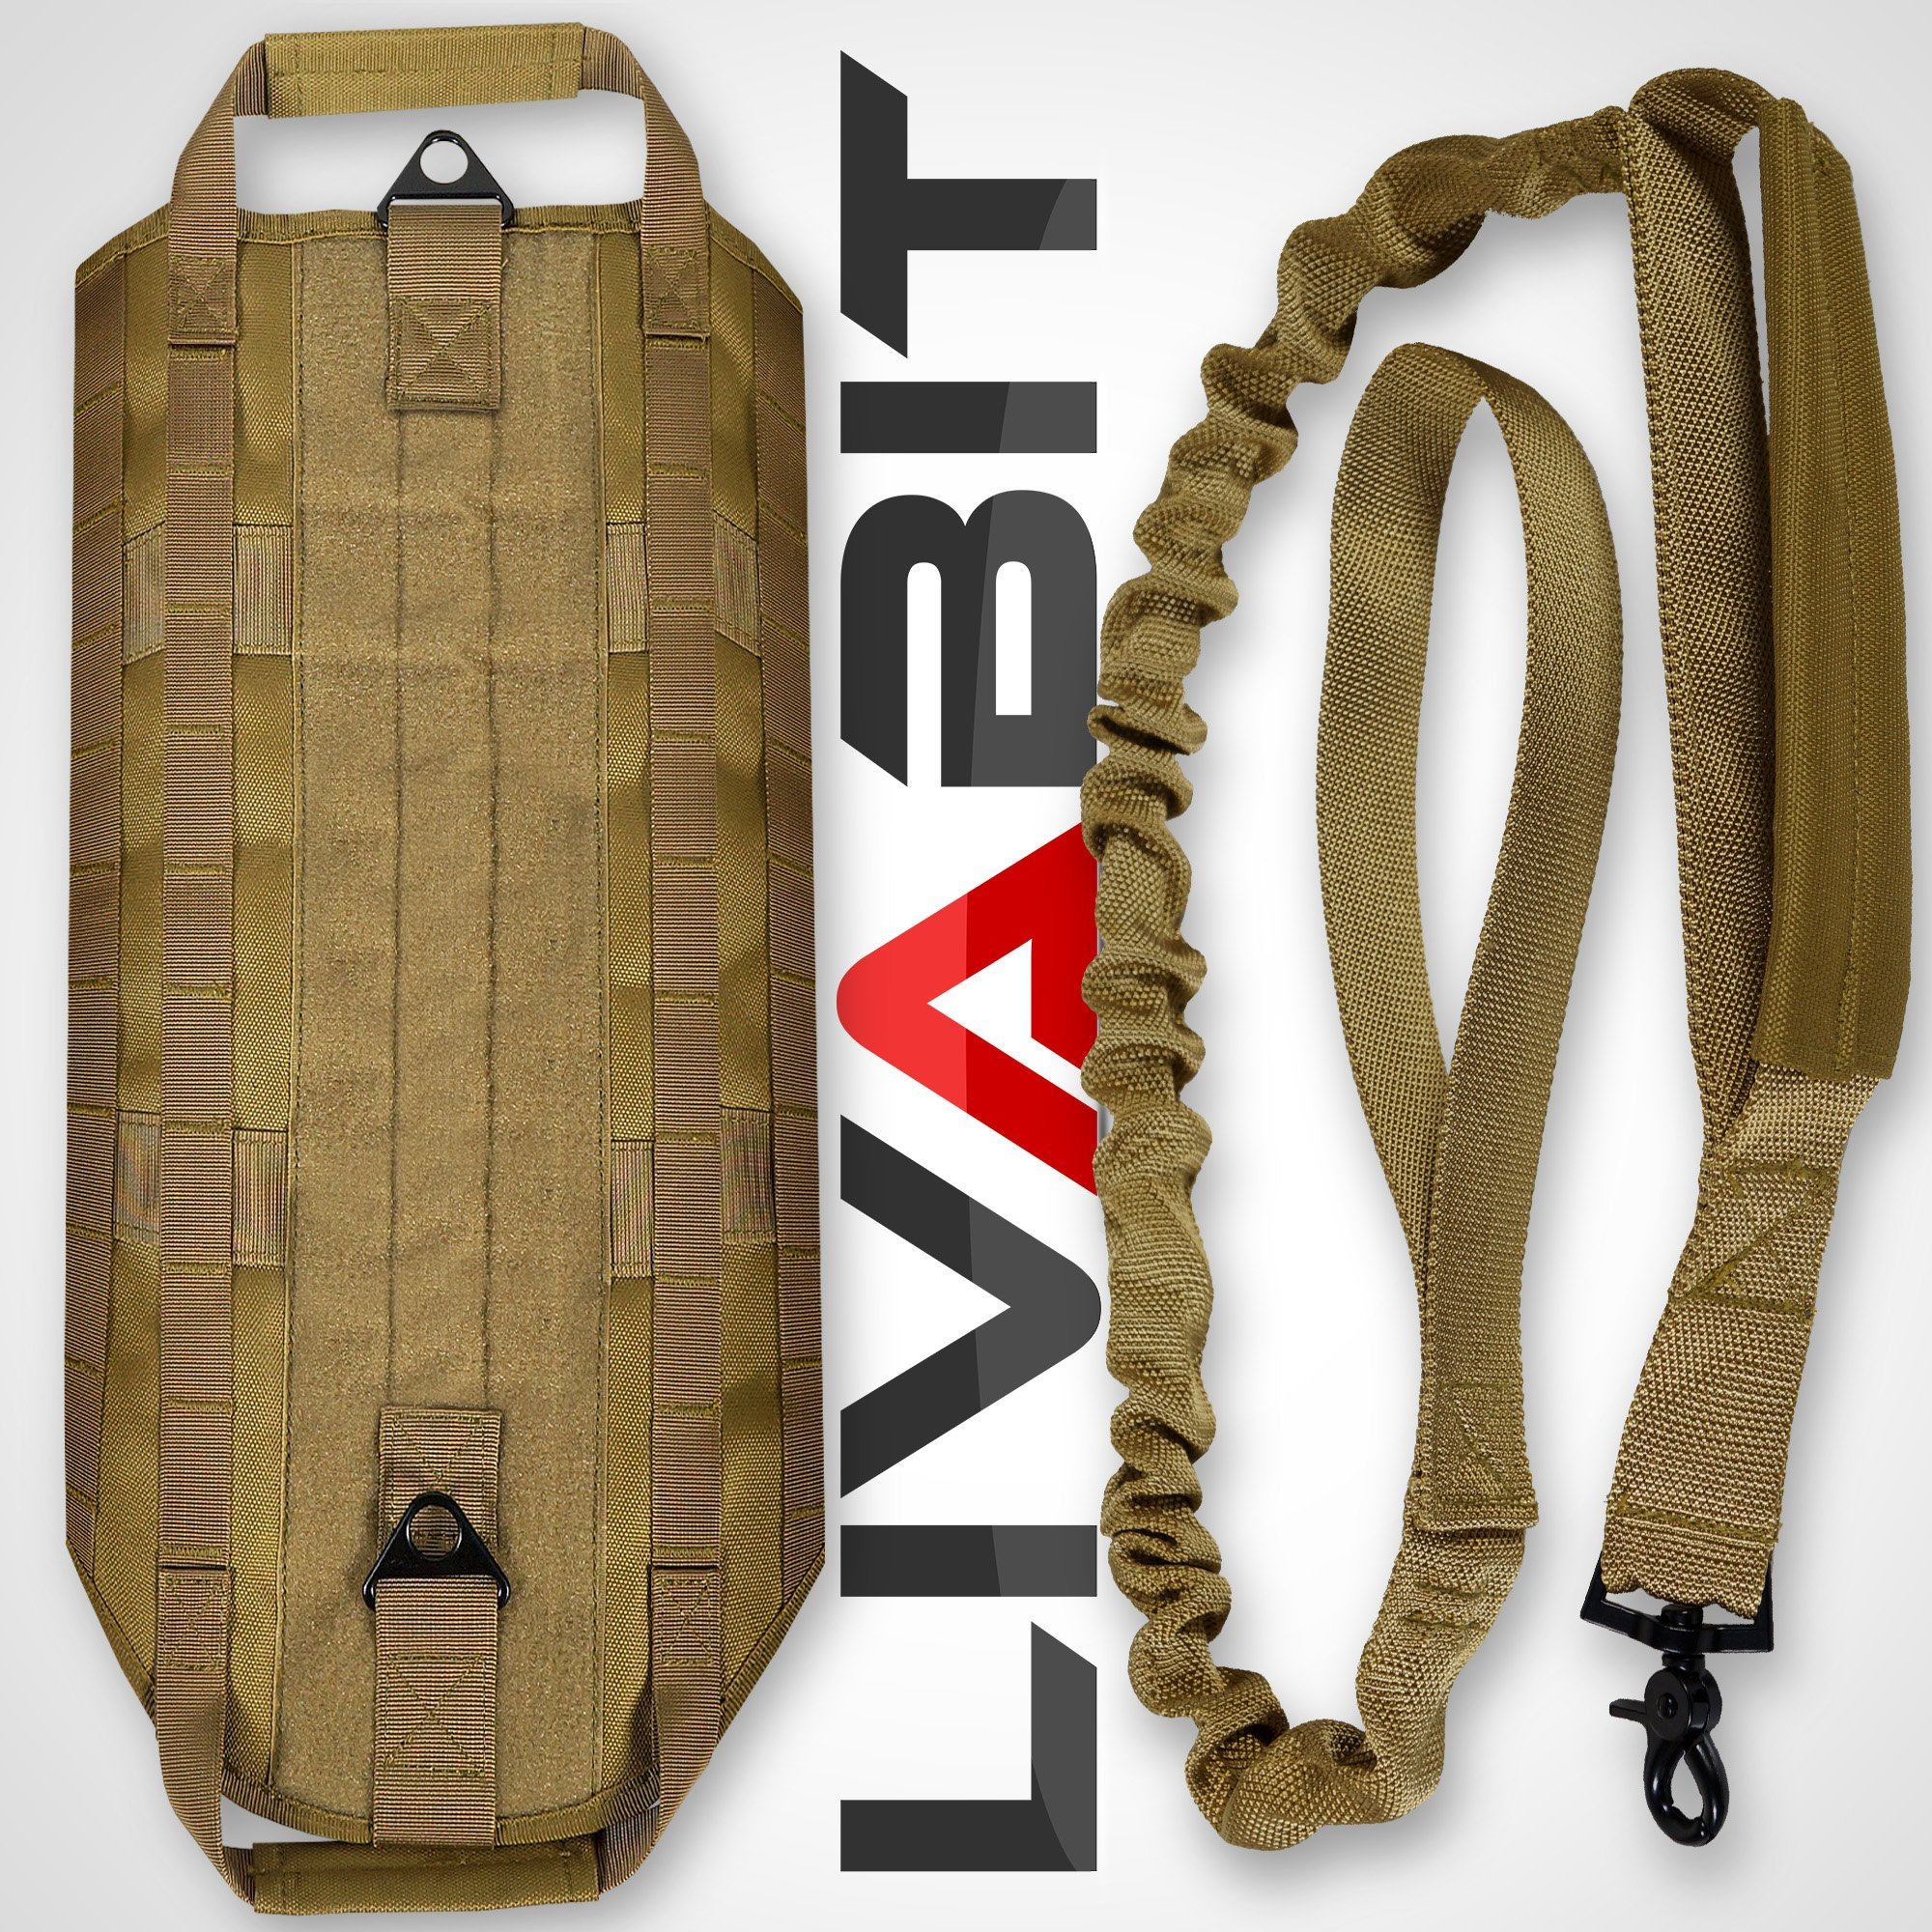 LIVABIT [ Tan ] Canine Service Dog Tactical Molle Vest Harness + Morale PVC Patches + Matching Heavy Duty Bungee Leash Strap Medium